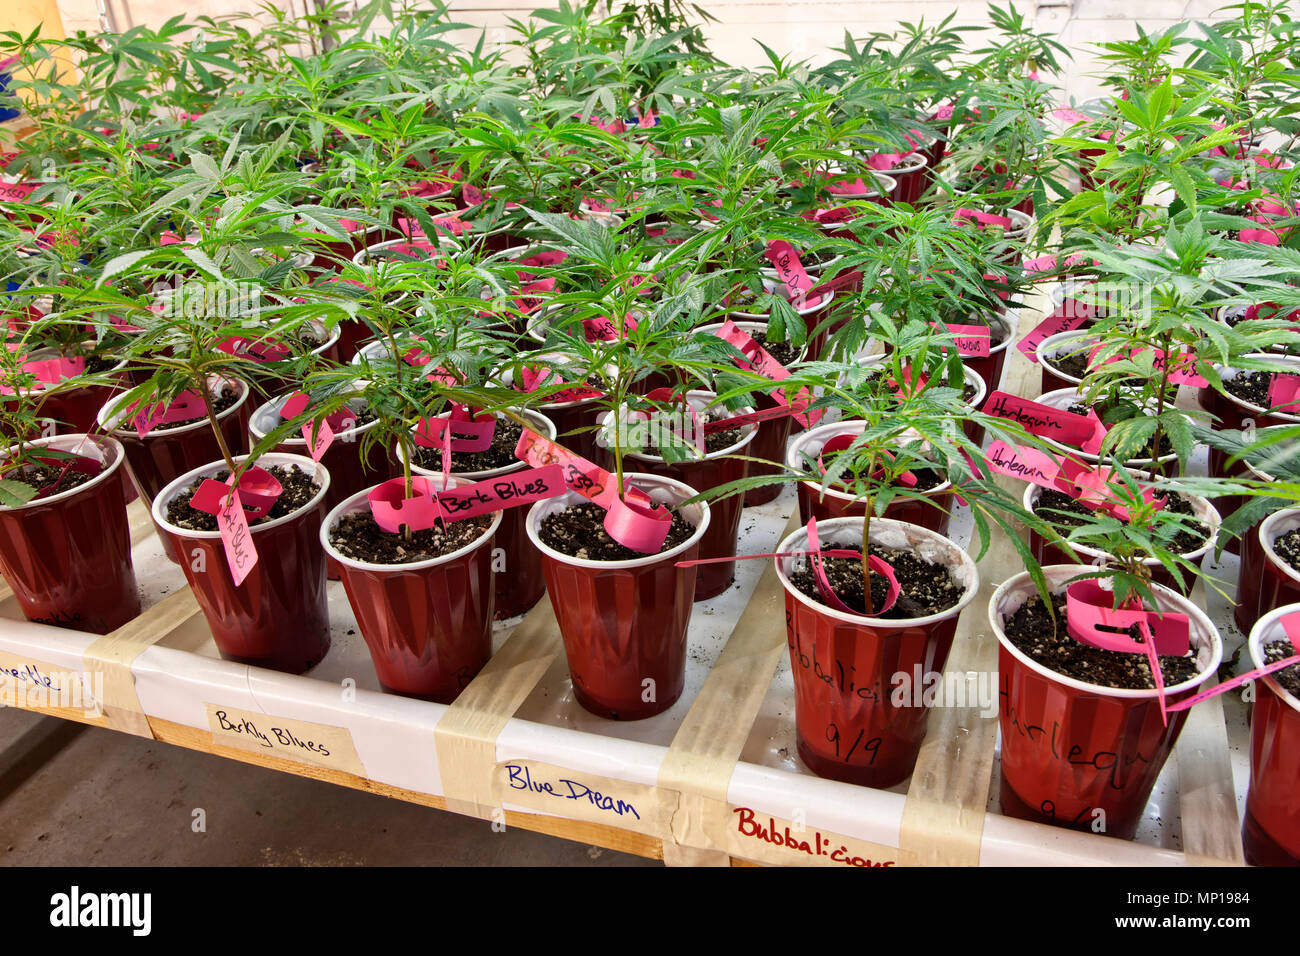 Hanf Beleuchtung Cannabis Sativa Stockfotos And Cannabis Sativa Bilder Alamy